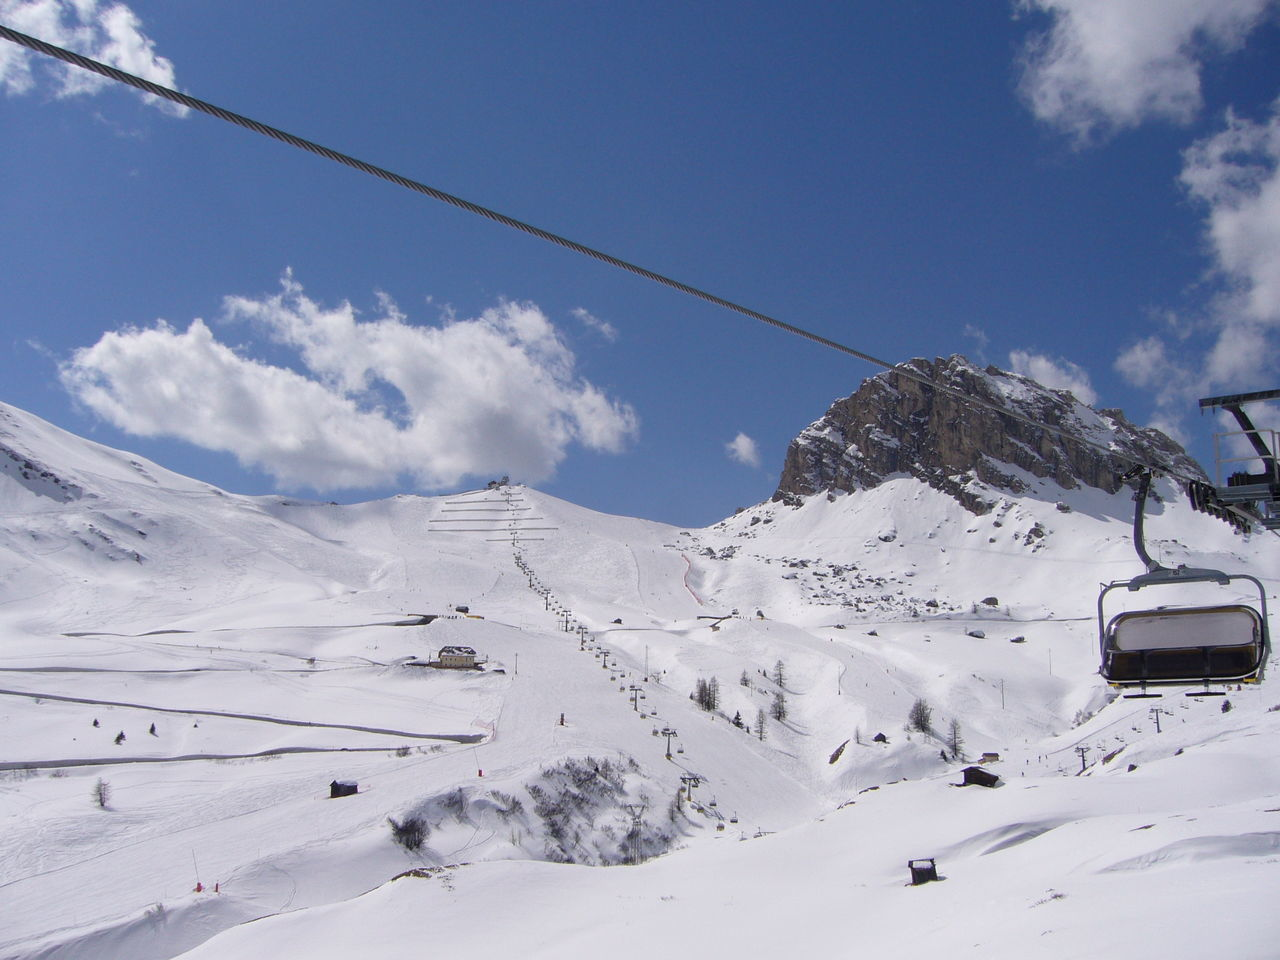 Snow Landscape Cold Temperature Nature Winter Outdoors Day Ski Lift Sky Beauty In Nature Mountain Skiing Scenics Snowcapped Mountain Beauty In Nature ❤️❤️ Somewhere Over The Rainbow Scenics Nature Scenics Landscape Winter Dolomiti Skyline Blue And White Ski Slope Miles AwayBeauty In Nature Dolomiti Italy